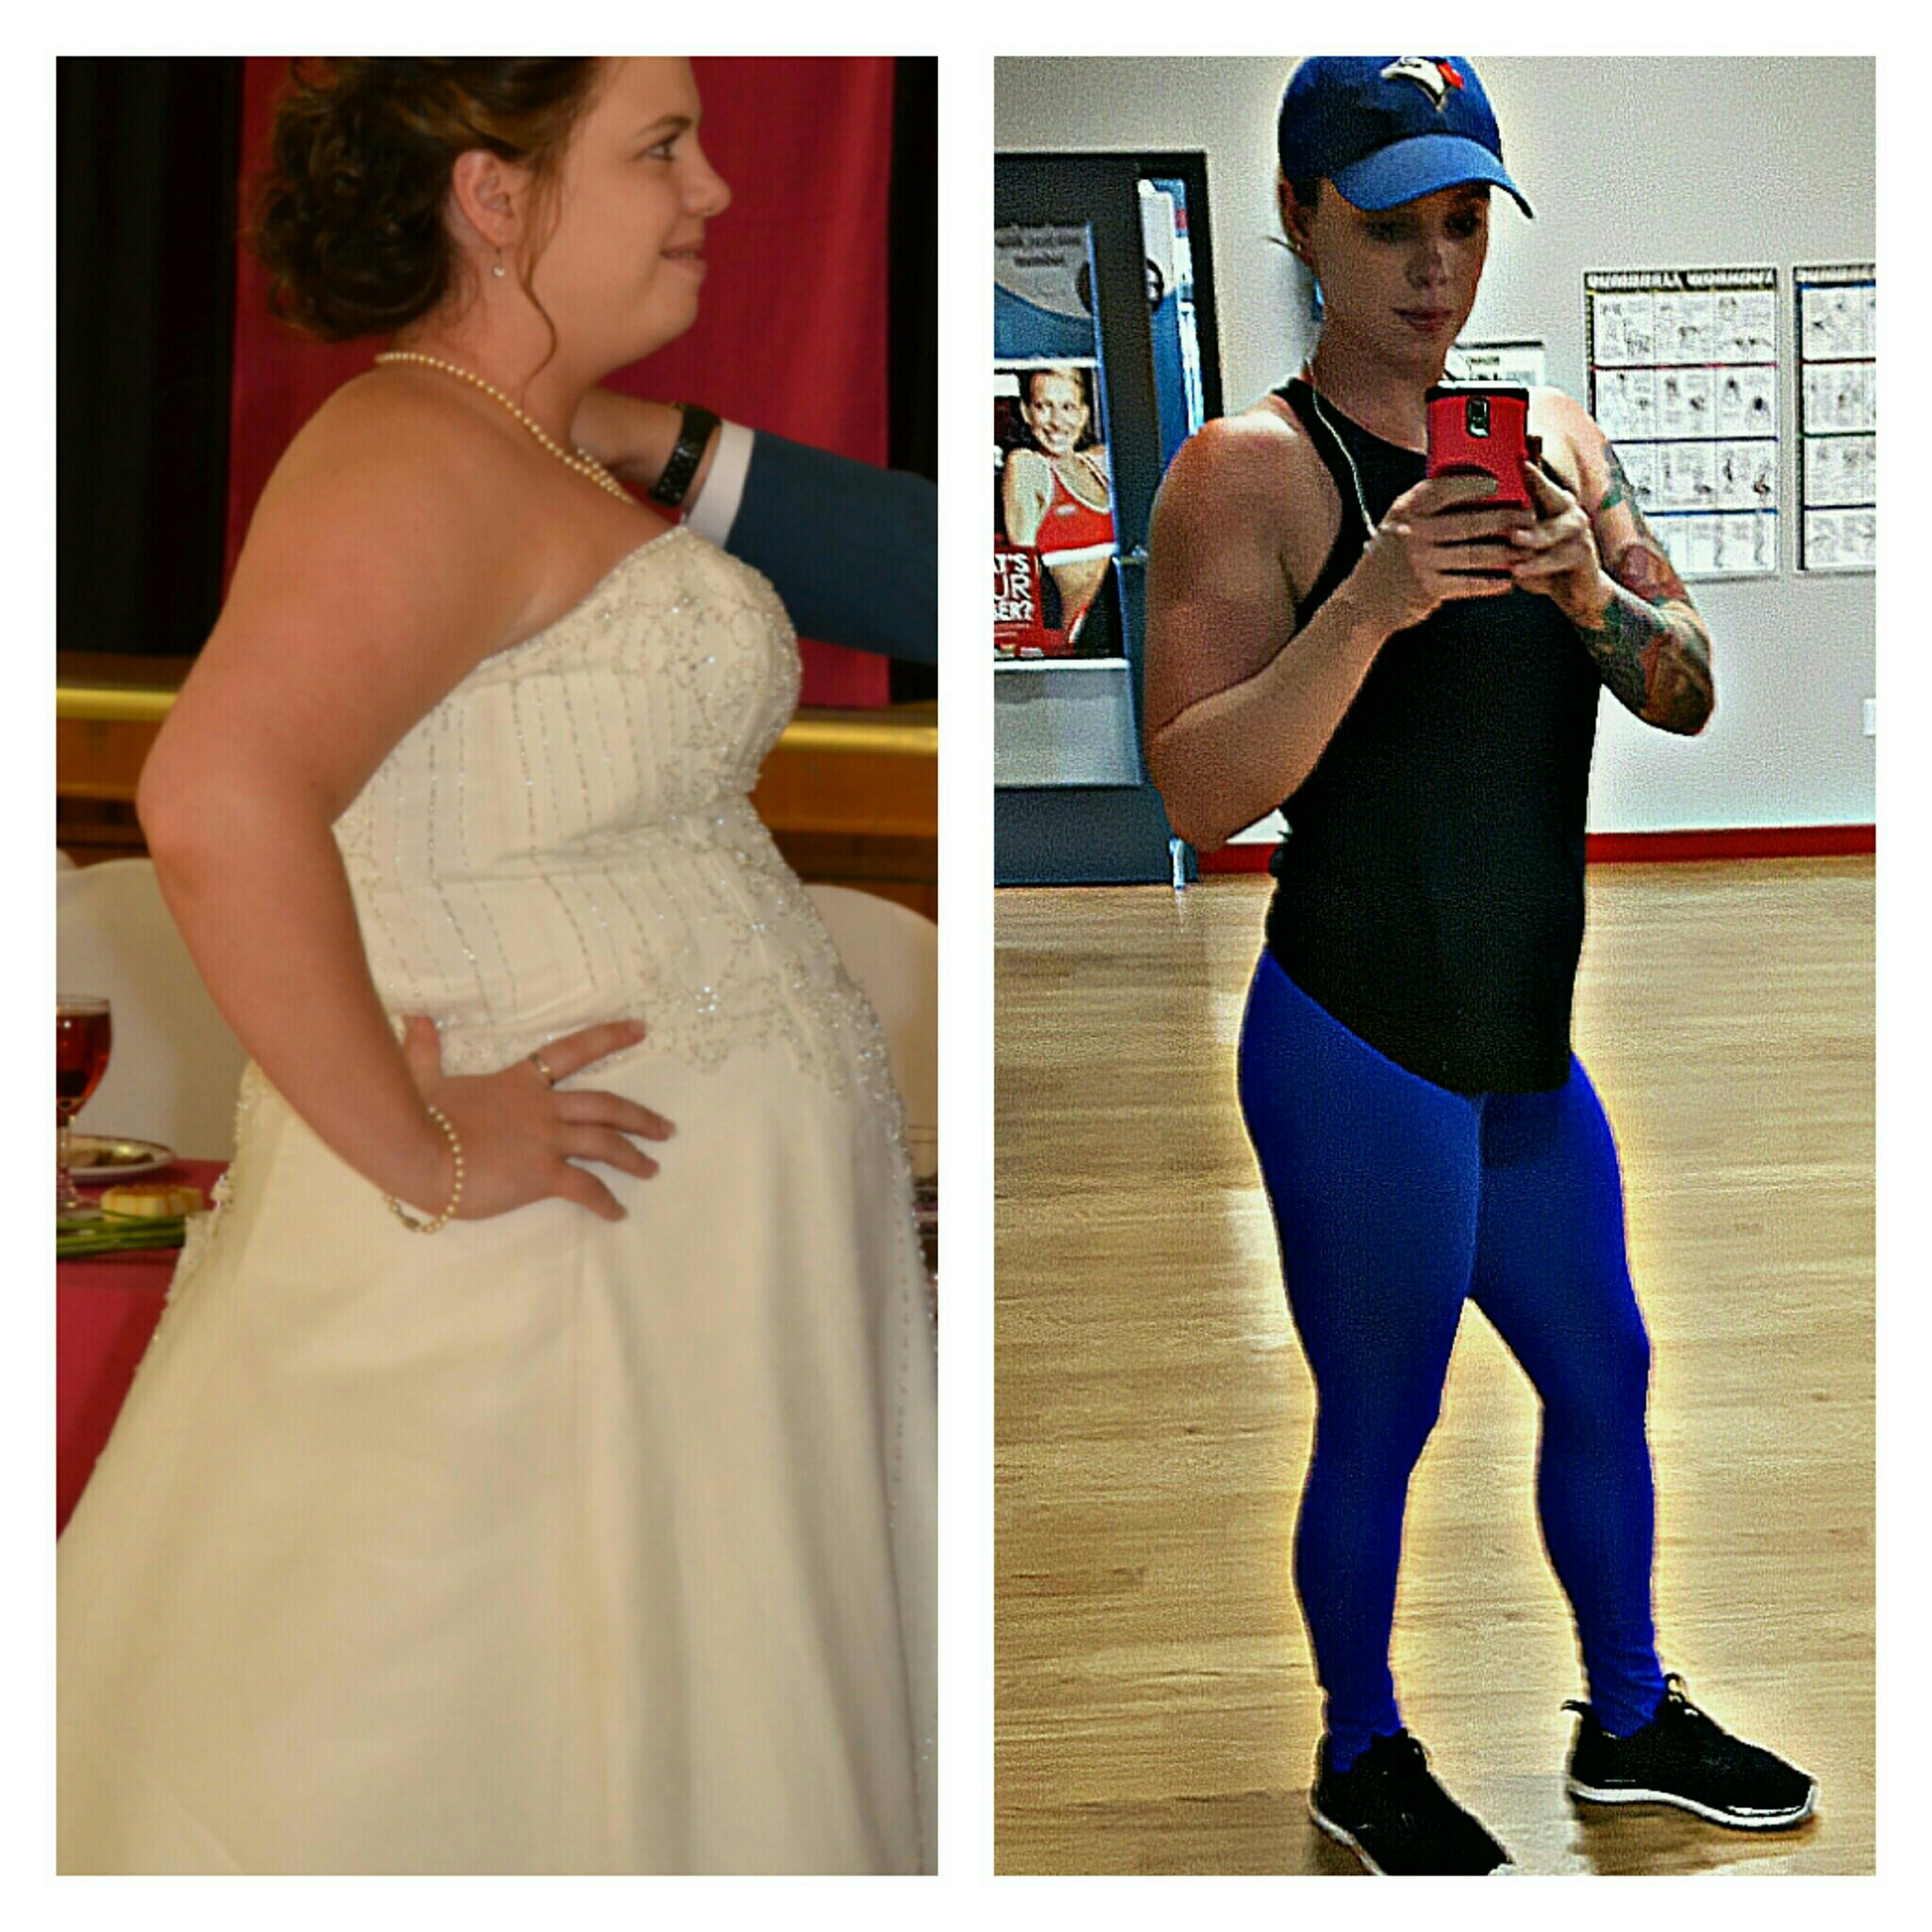 Great success story! Read before and after fitness transformation stories from women and men who hit weight loss goals and got THAT BODY with training and meal prep. Find inspiration, motivation, and workout tips | 100 Pounds Lost: I Fly With My Own Wings Now